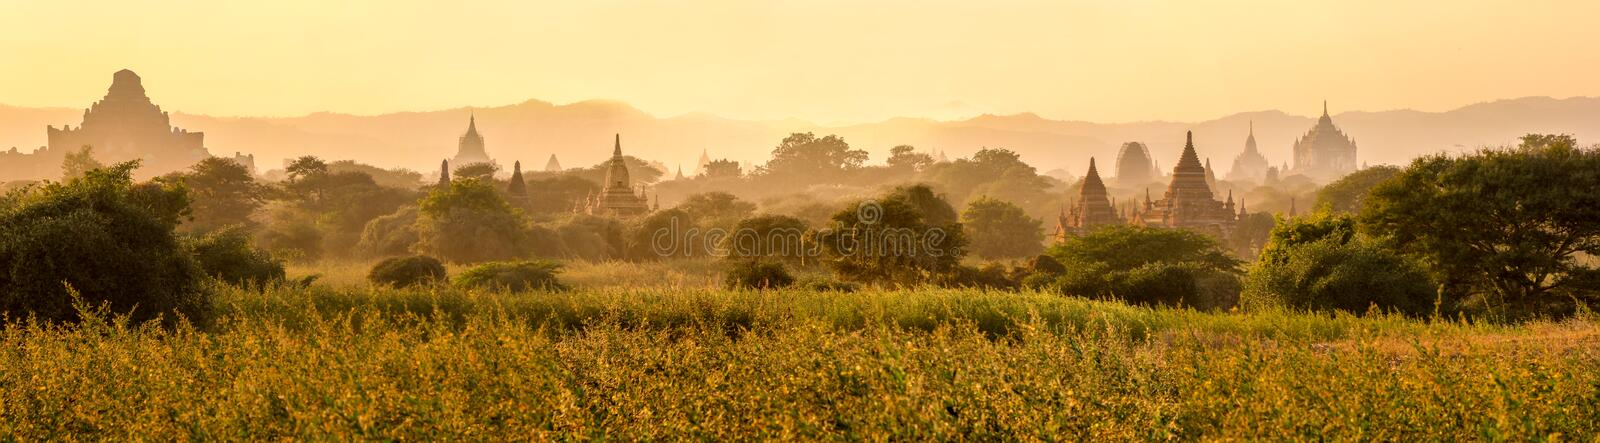 Temple ruins at the sunrise, Bagan, Myanmar royalty free stock photography